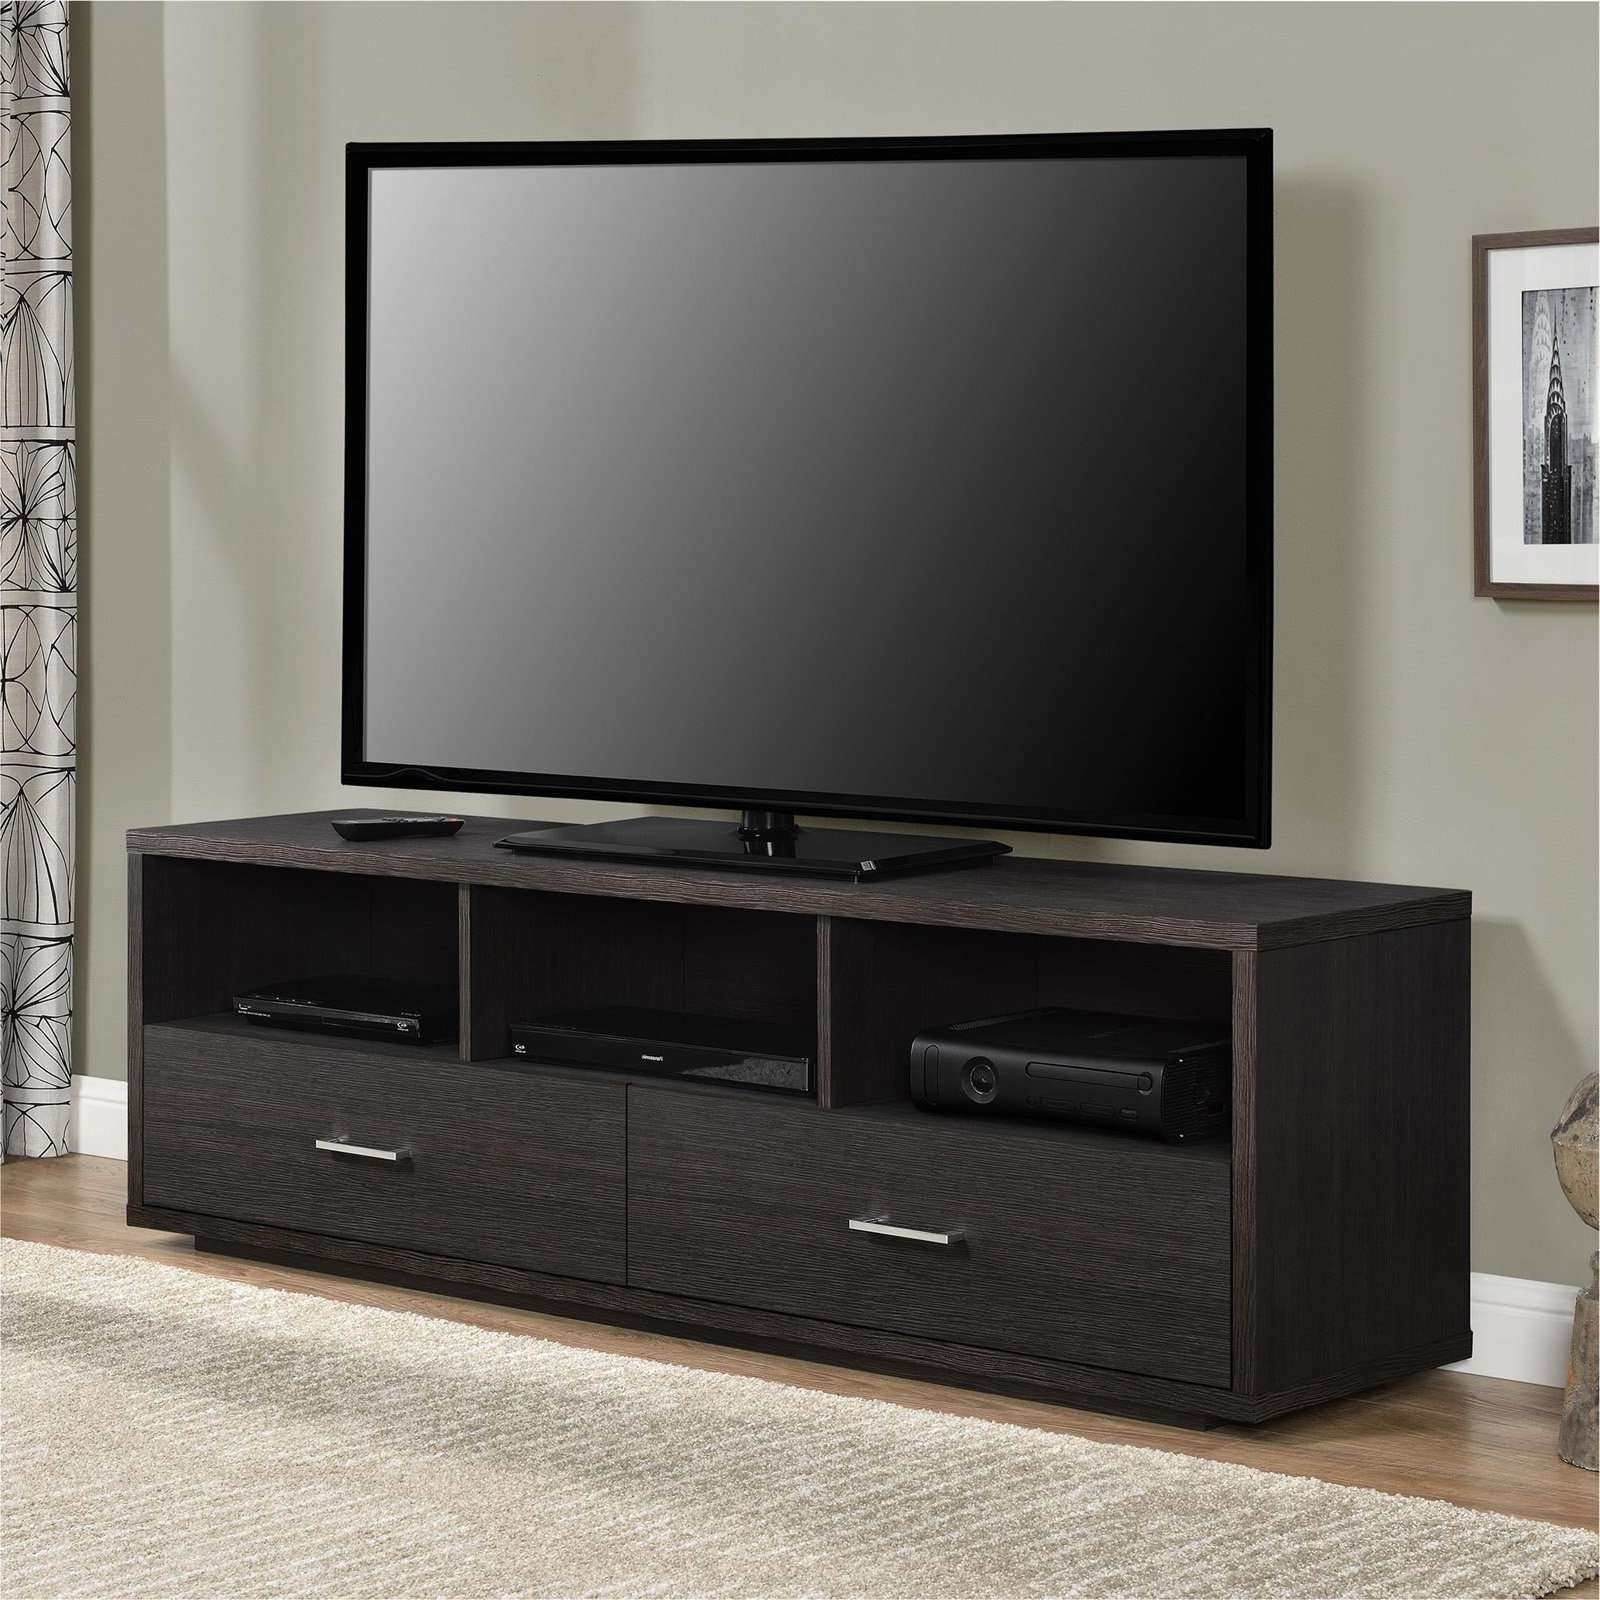 """Ameriwood Home Clark Tv Stand For Tvs Up To 70"""", Espresso Within Tv Stands For 70 Inch Tvs (View 10 of 15)"""